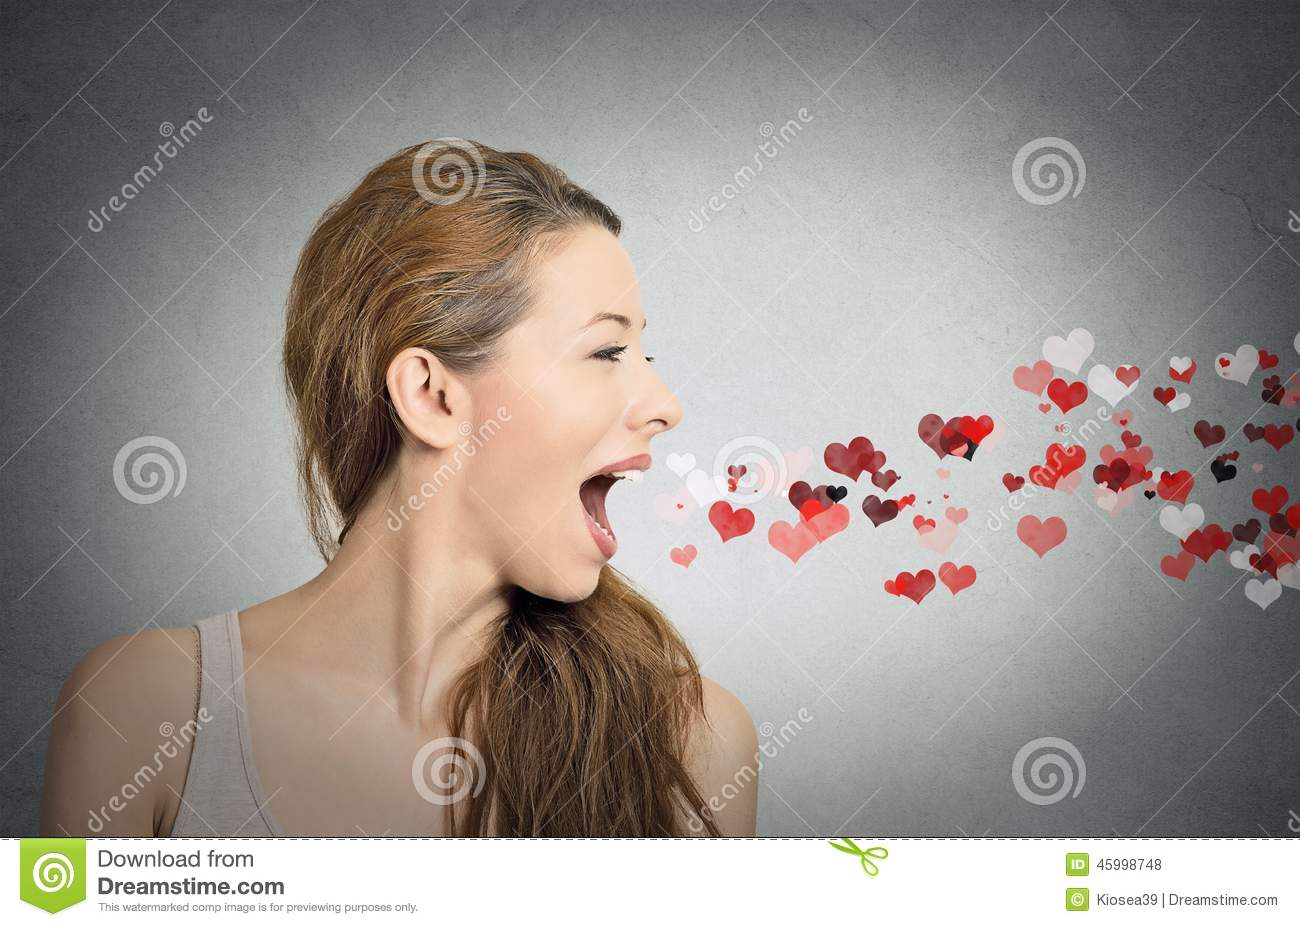 Woman sending kisses, red hearts coming out of open mouth